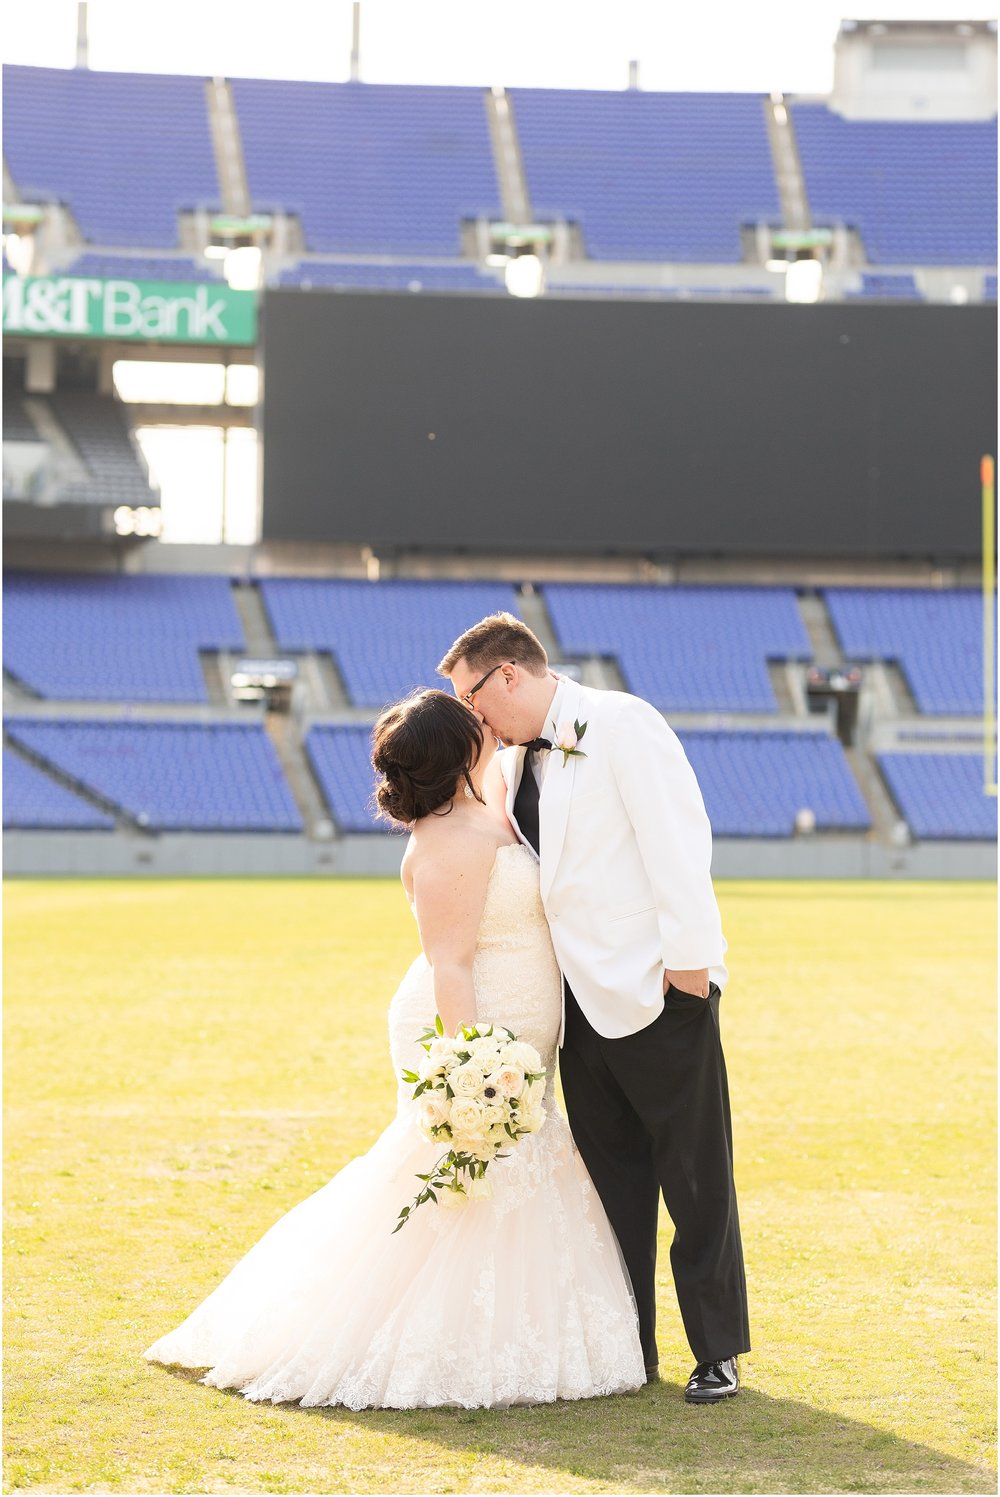 Ravens-Stadium-Wedding-photos-247.jpg